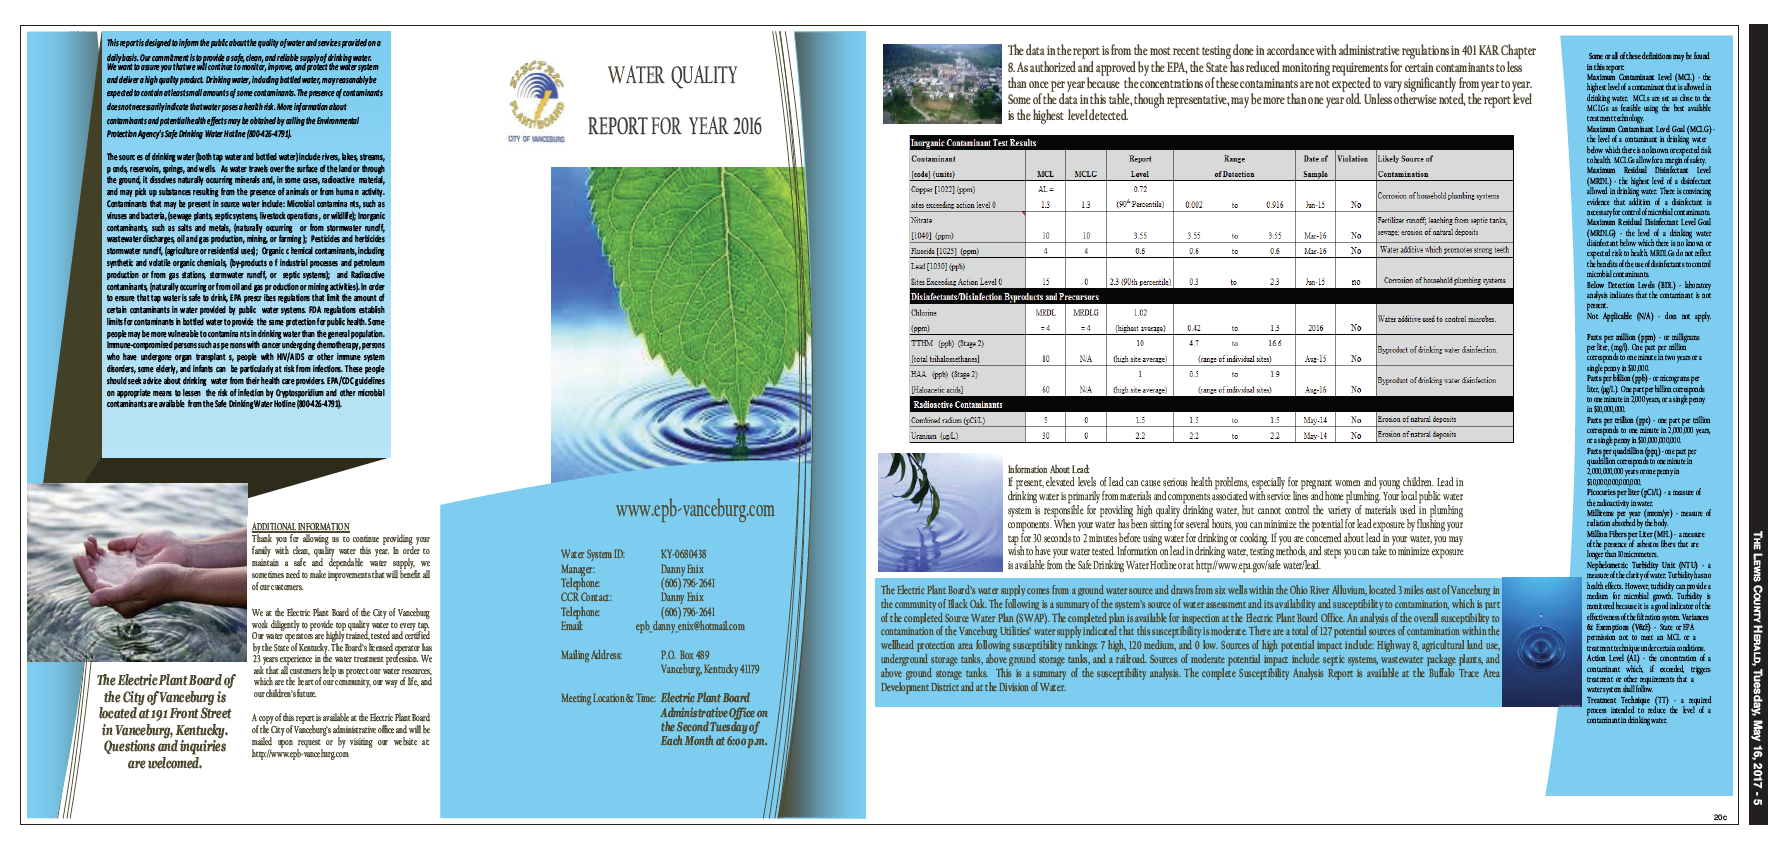 Electric Plant Board of the City of Vanceburg, 2016 Water Quality Report